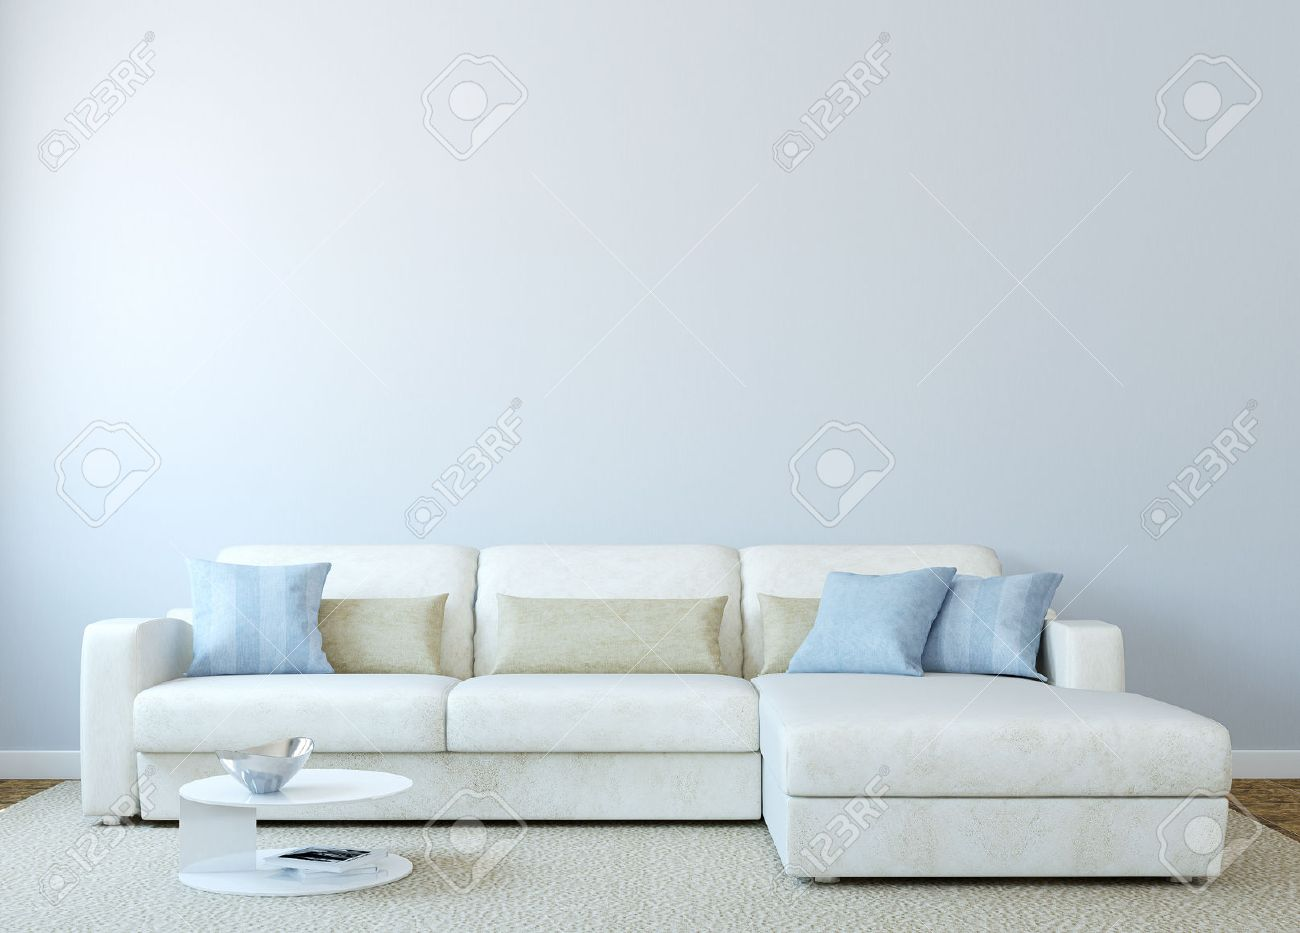 Empty living room with carpet - Beige Carpet Modern Living Room Interior With White Couch Near Empty Blue Wall